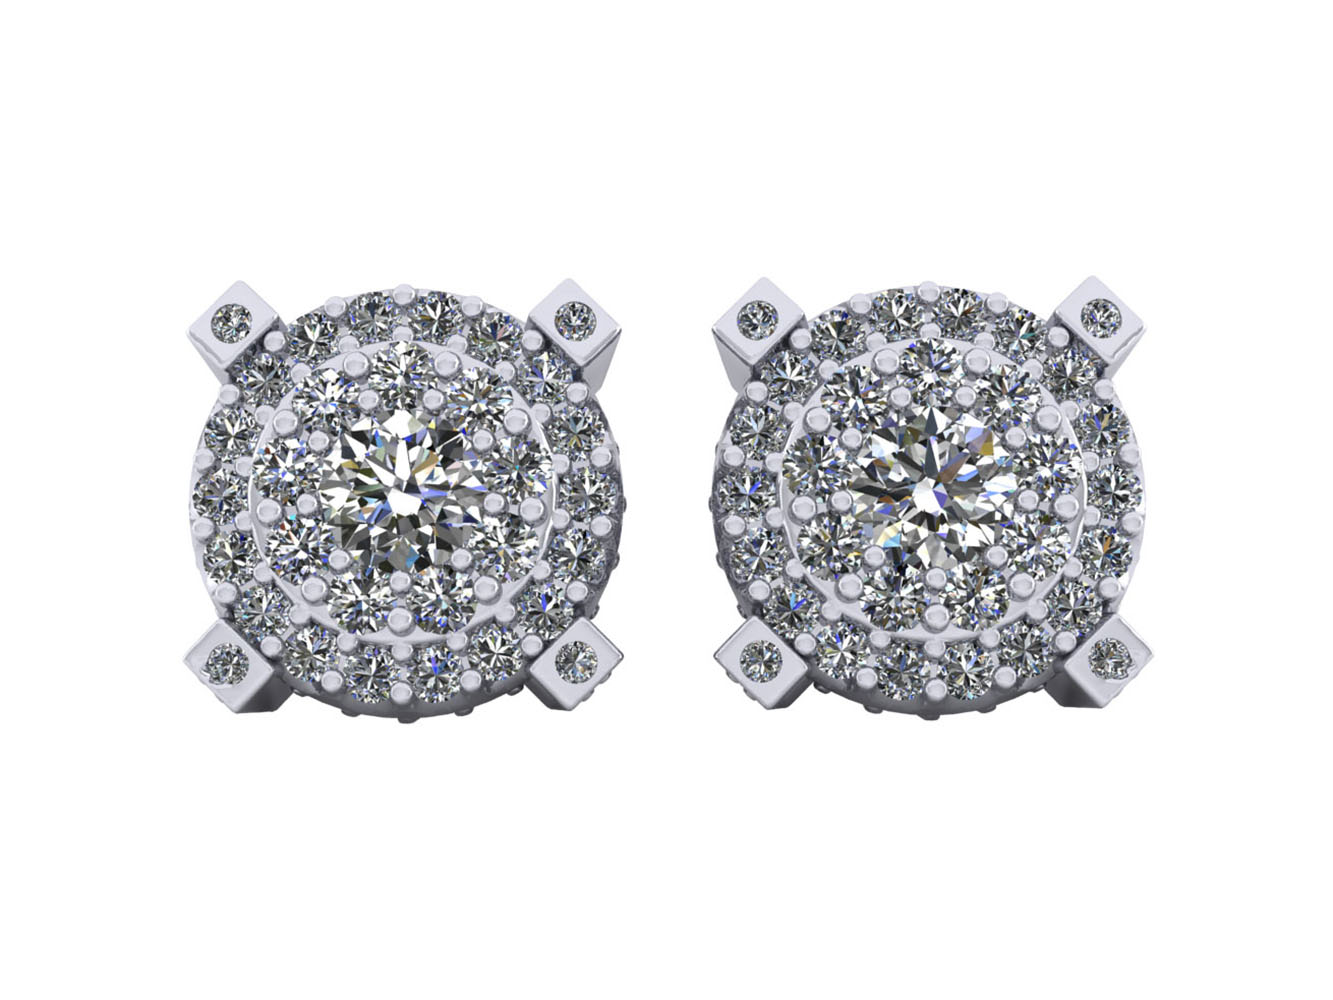 Men Womens 14k White Gold Finish 2.00 Ct Pave Set Diamond Cluster Stud Earrings Jewelry & Watches